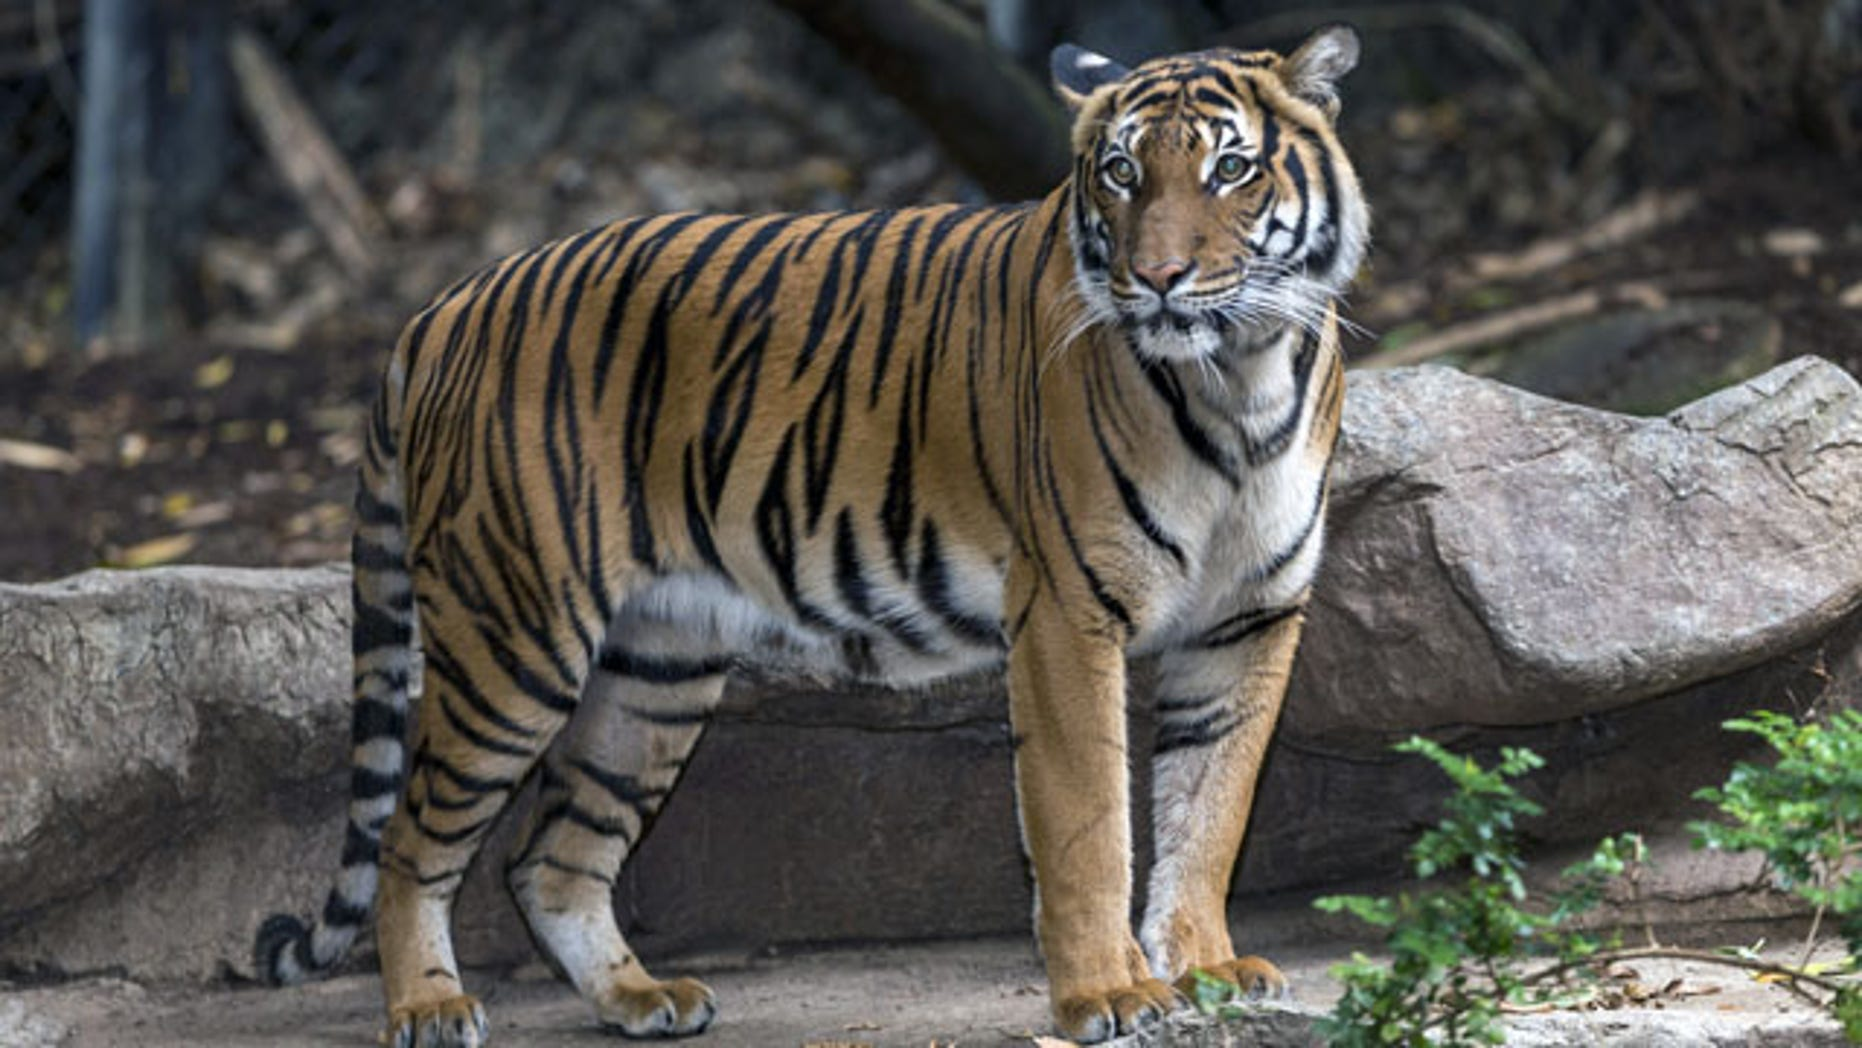 This undated photo released by the San Diego Zoo shows a female Malayan tiger named Tiga Tahun in her habitat at the San Diego Zoo. The zoo said Monday Dec. 23, 2013, that Tiga, died Saturday of neck injuries and breathing difficulties after being mauled by a male tiger. (AP/San Diego Zoo)